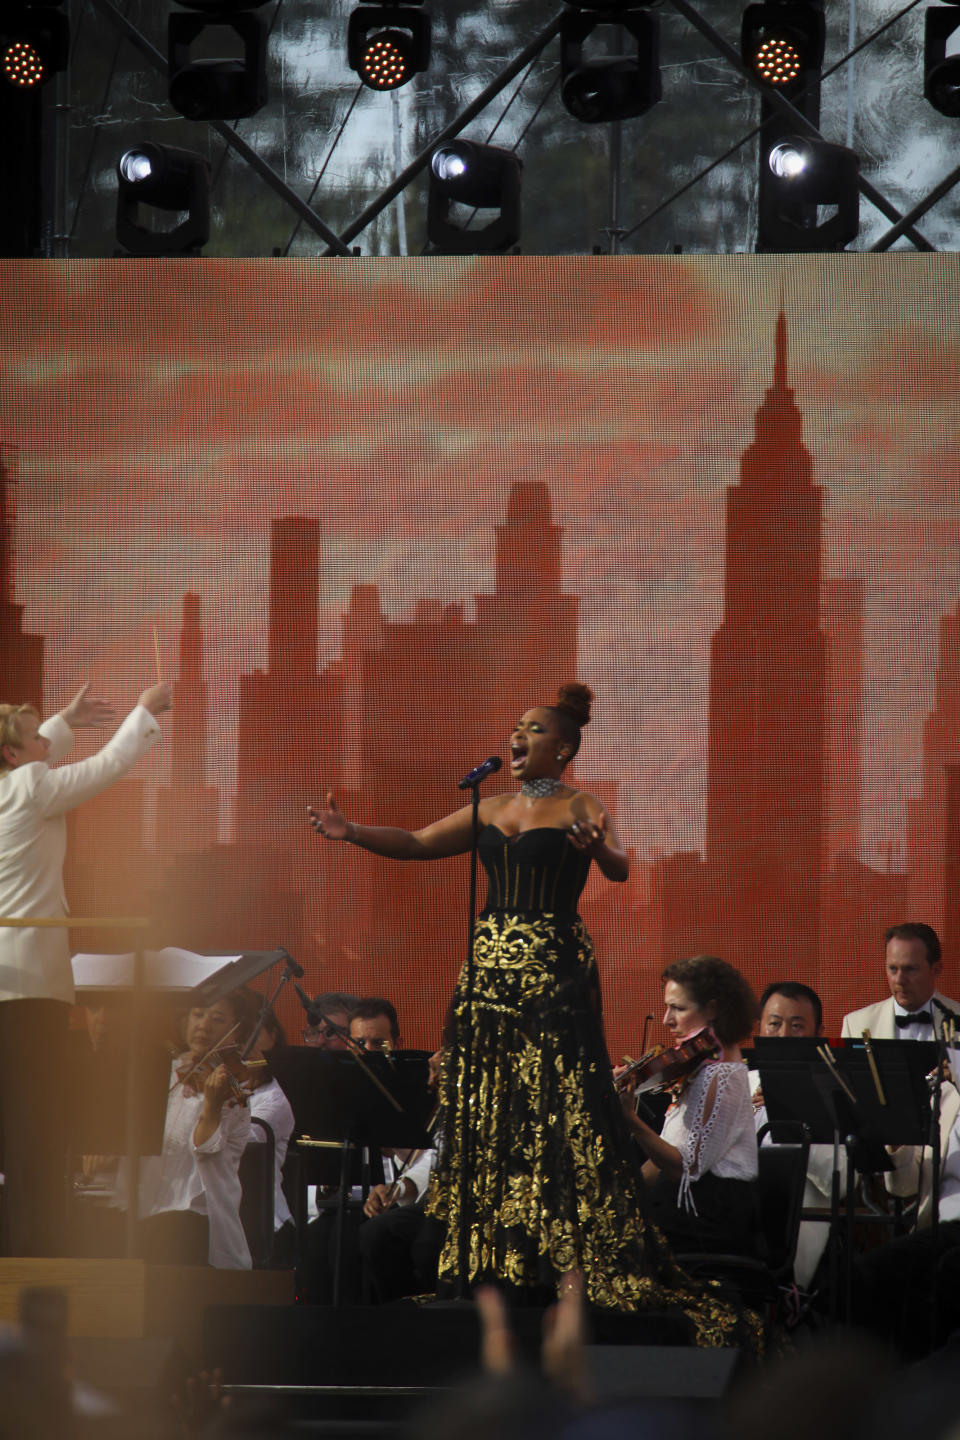 Jennifer Hudson performs with the New York Philharmonic orchestra at We Love NYC: The Homecoming Concert at The Great Lawn in Central Park on Saturday, Aug. 21, 2021, in New York. (Photo by Andy Kropa/Invision/AP)